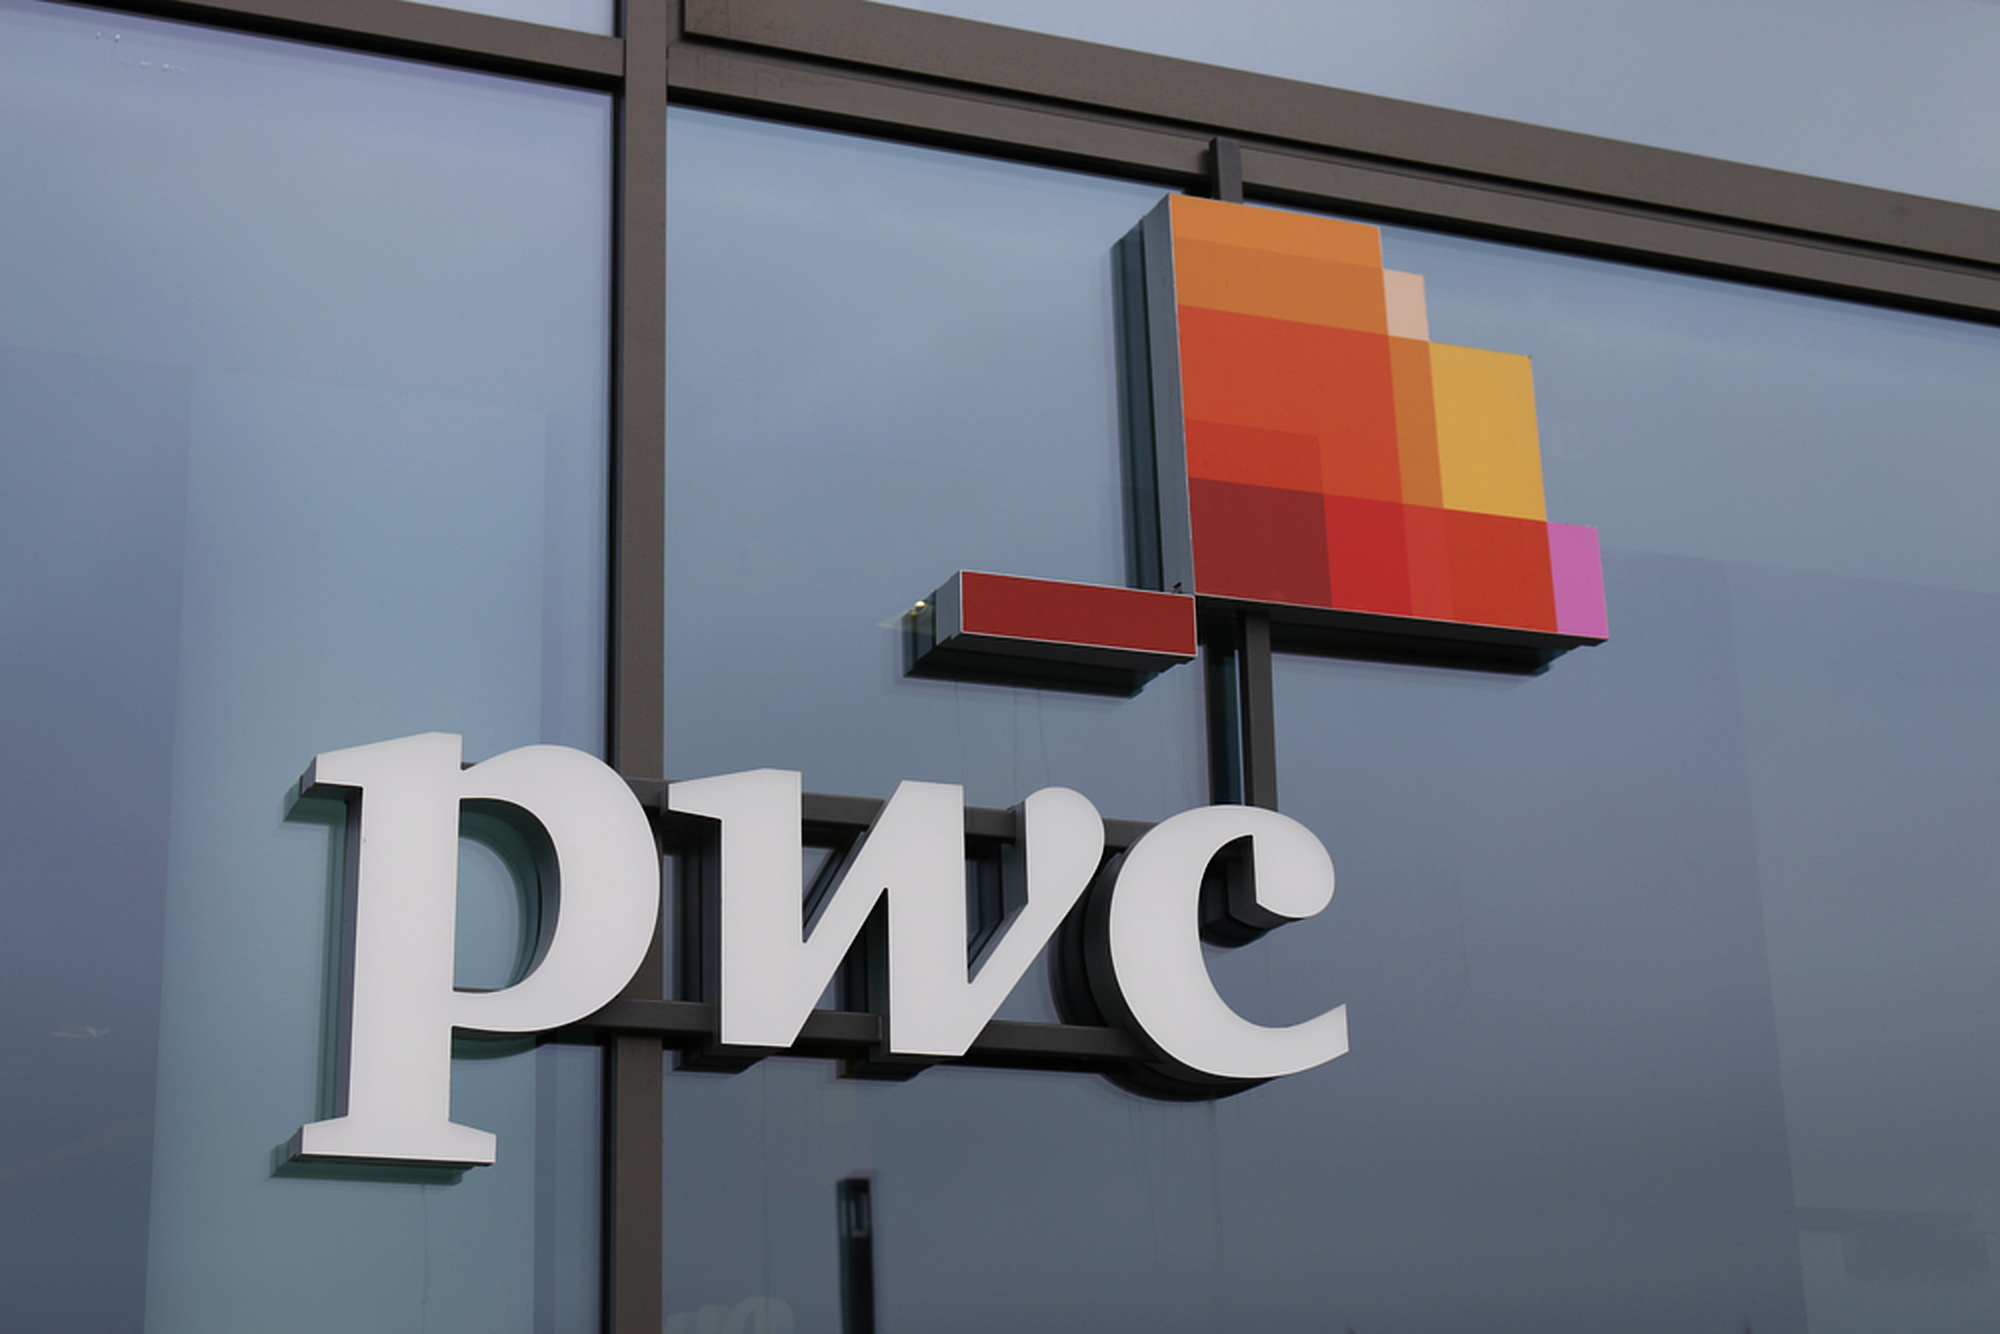 PricewaterhouseCoopers (PwC), audit firm, faces fresh scrutiny for abetting corruption after massive leaks (PHOTO/File)